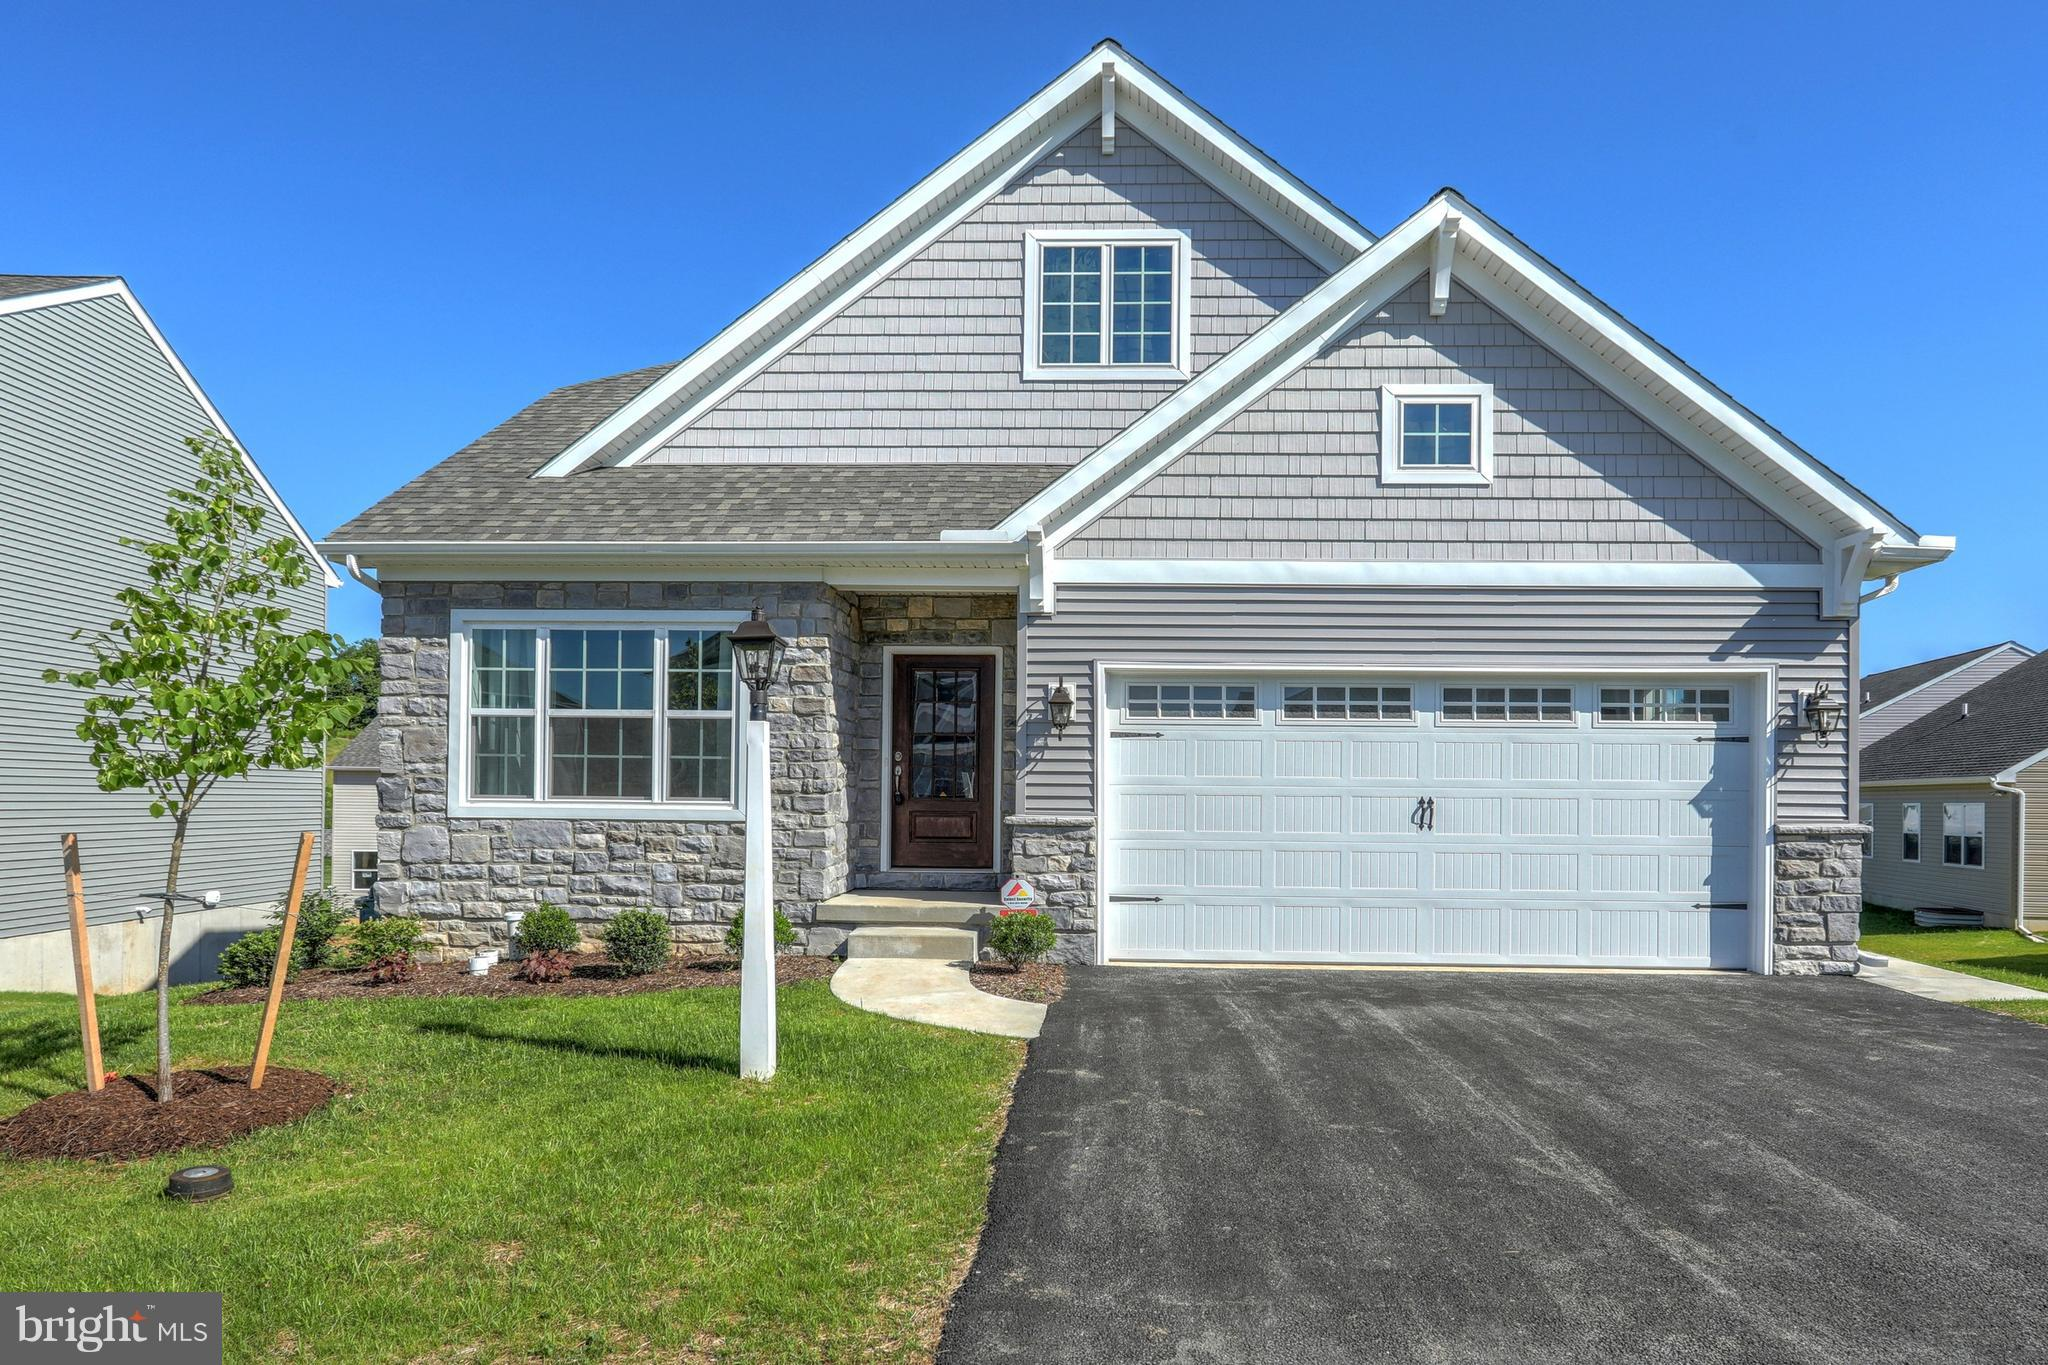 713 DUQUESNE ROAD, YORK, PA 17402